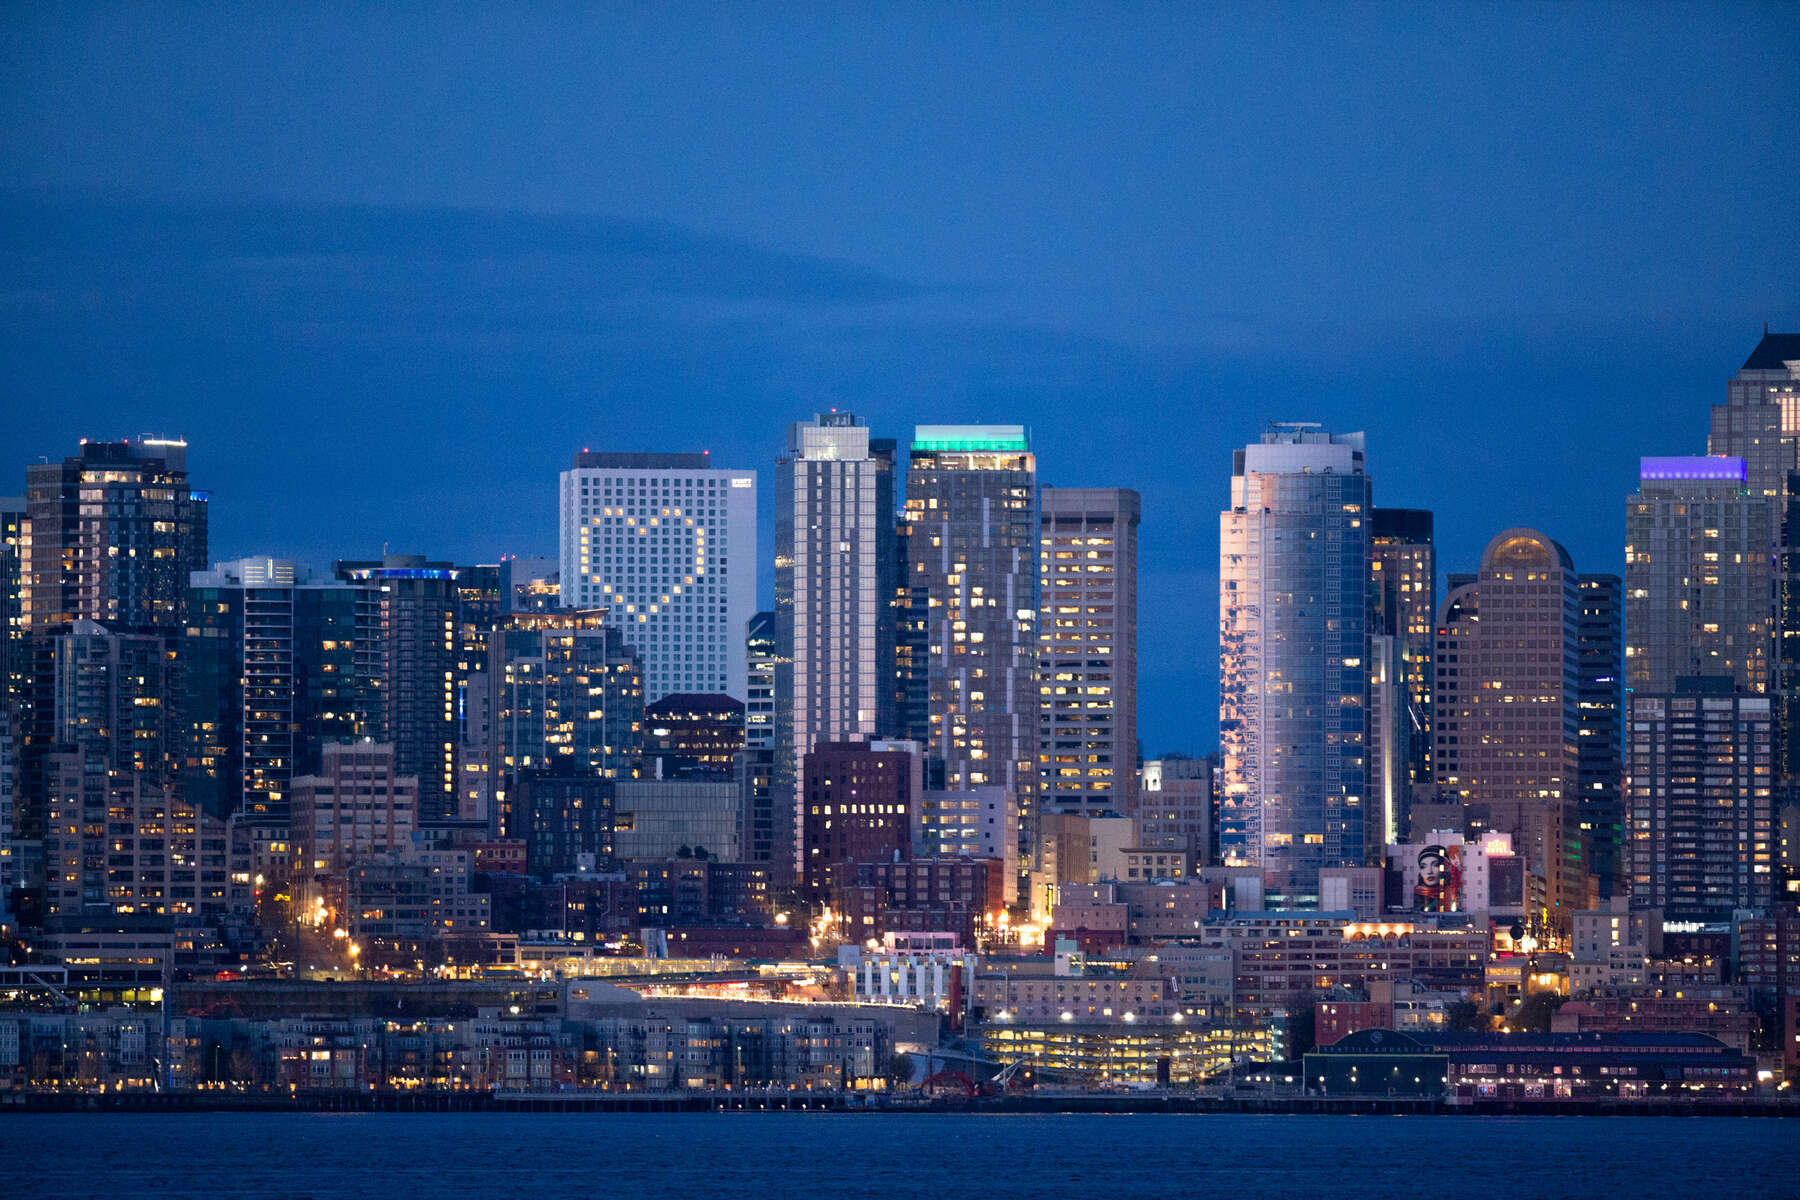 SEATTLE, WA - APRIL 06: The Seattle skyline is seen at sunset on April 6, 2020 in Seattle, Washington. Windows of the Hyatt Regency Hotel are lit up in the shape of a heart. Washington State Governor Jay Inslee extended the Stay at Home order until May 4th to help slow the spread of coronavirus (COVID-19). (Photo by Karen Ducey/Getty Images)